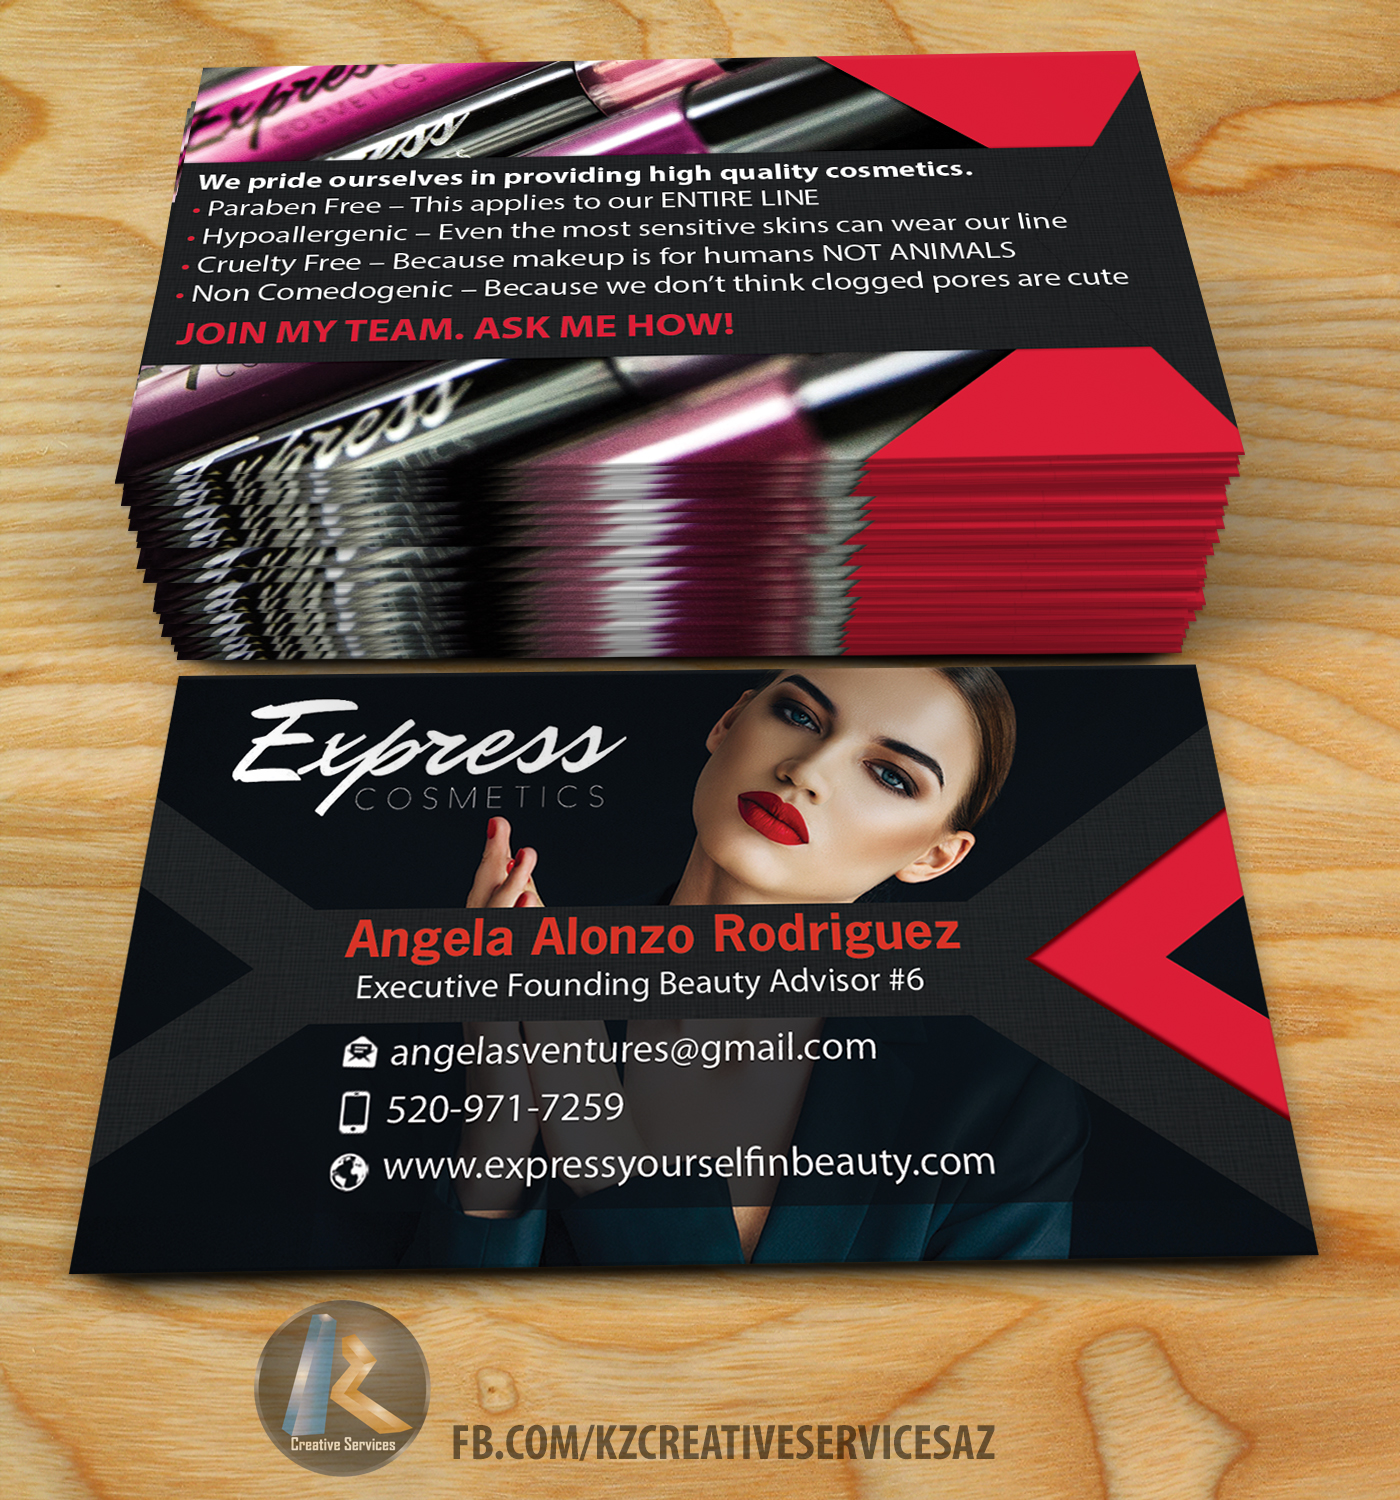 express cosmetics business cards · kz creative services